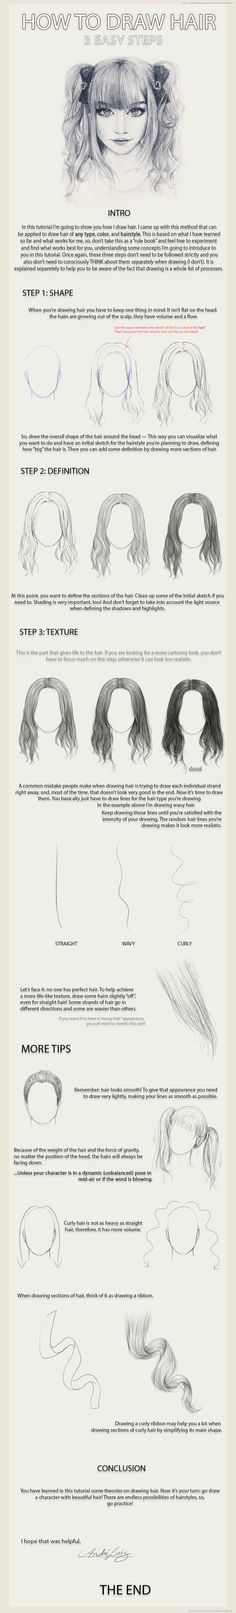 3 Easy Steps to Draw Hair by AndreLuizBarbosa on deviantART @tiinatolonen